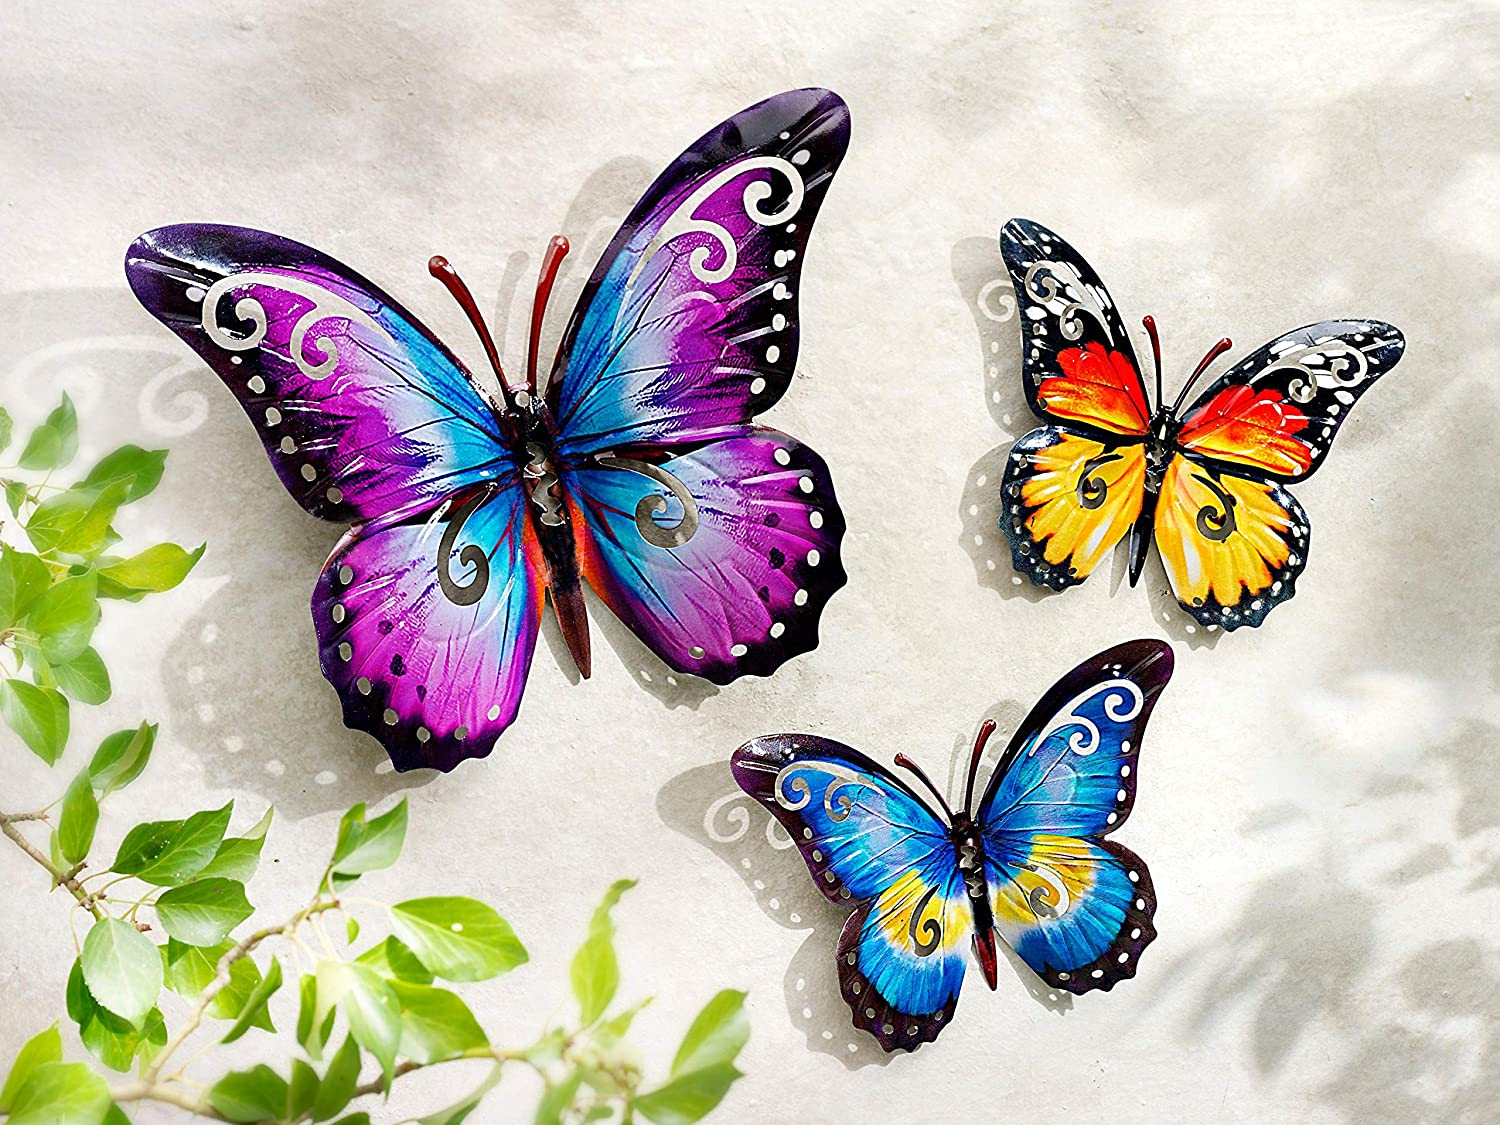 CT DISCOUNT STORE Nature Inspired 3 D Metal Wall Scupture Beautiful Butterflies Trio Home Decor Accent (3D Colorful Butterfly Trio)